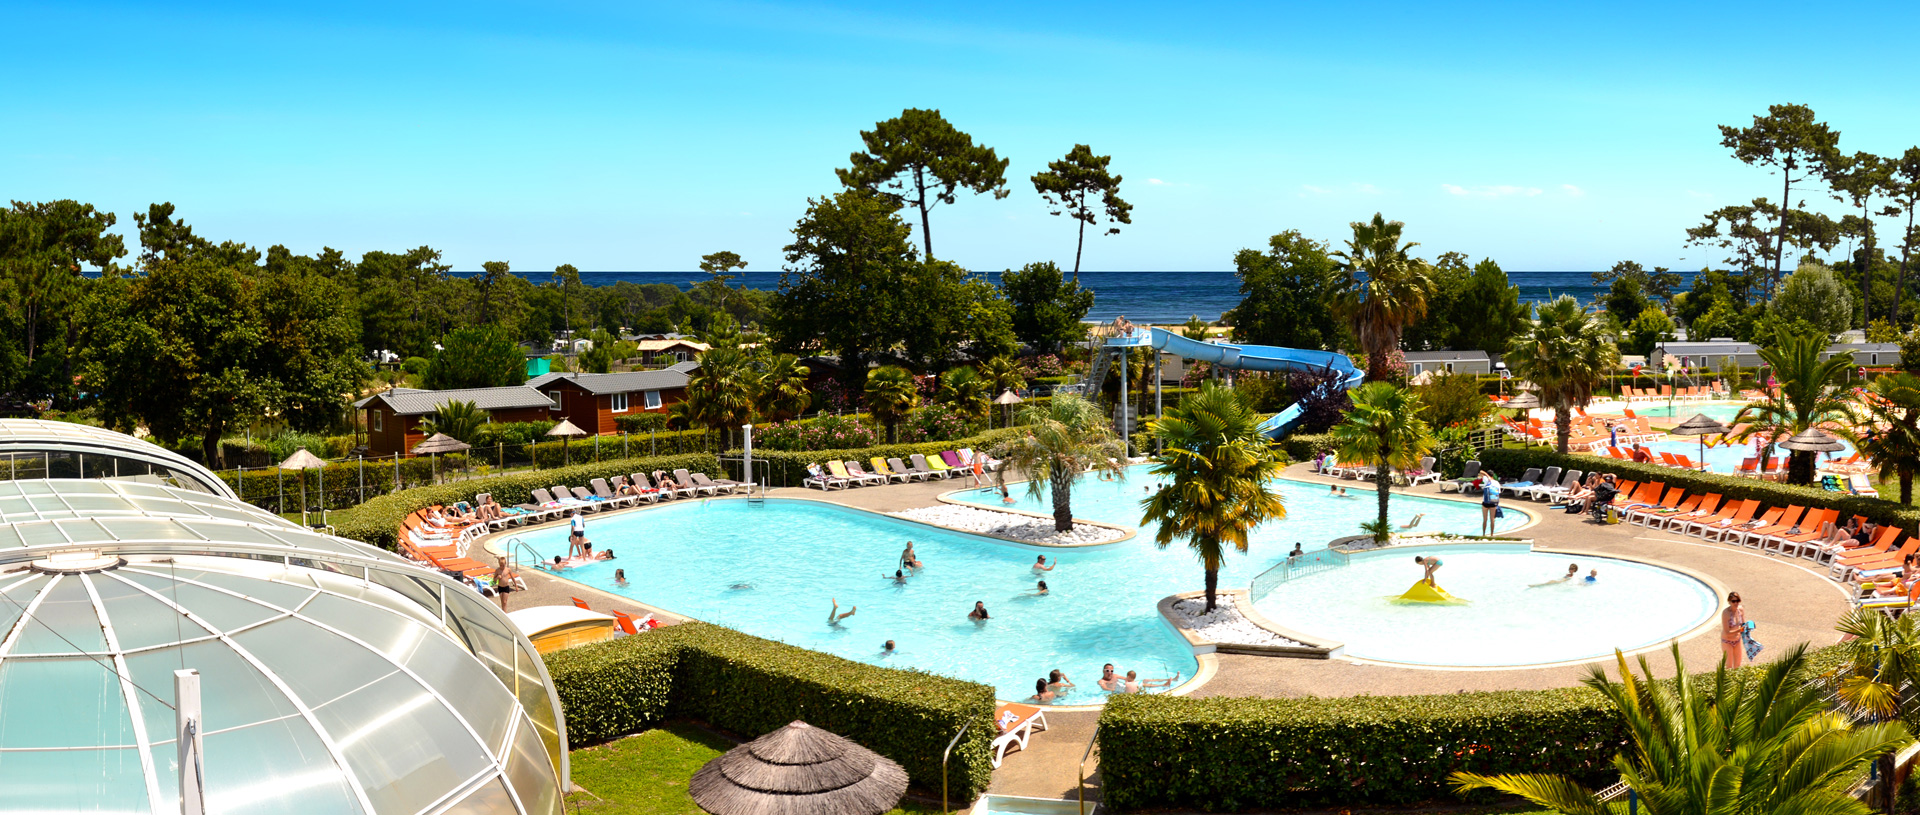 Camping les viviers - Camping arcachon piscine ...